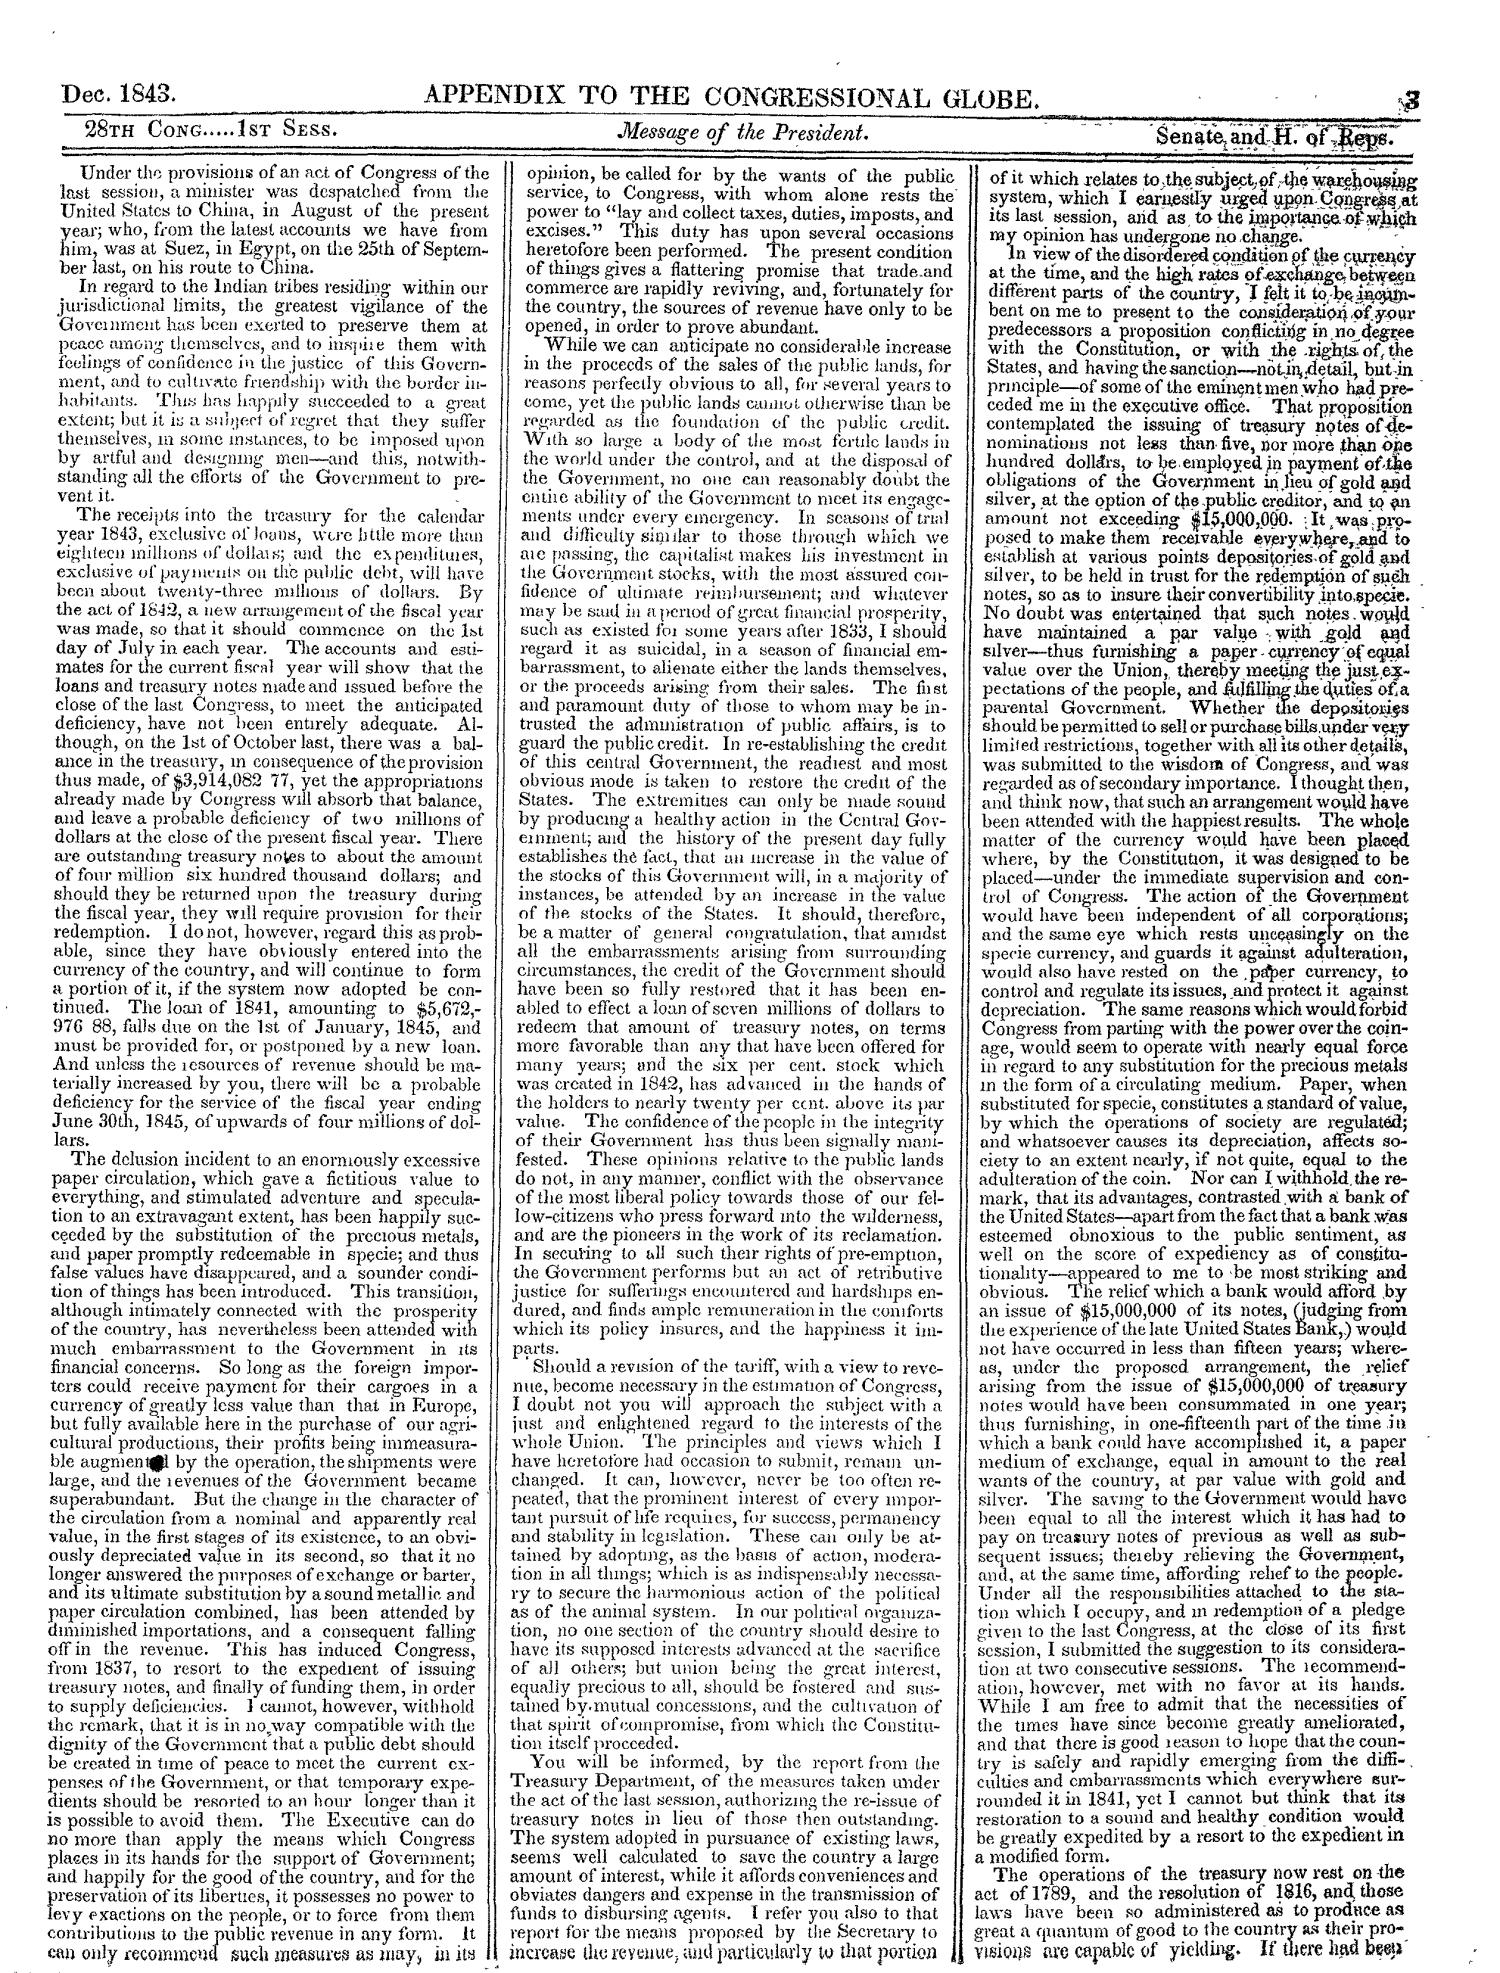 The Congressional Globe, Volume 13, Part 2: Twenty-Eighth Congress, First Session                                                                                                      3